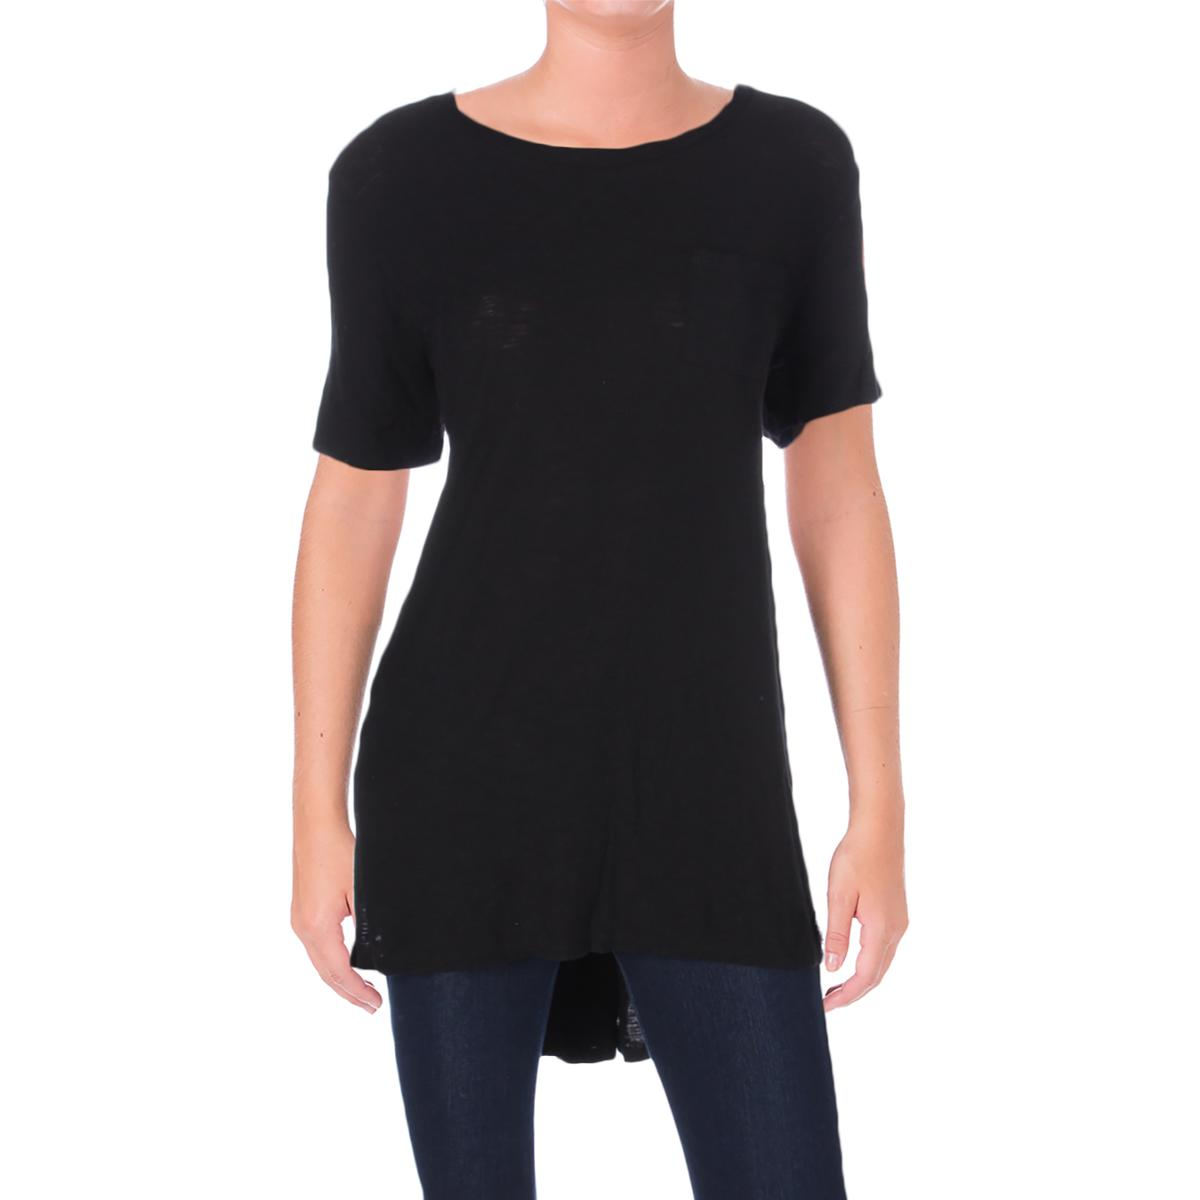 5bfd8130db7 Details about Michelle by Comune Womens Black Hi-Low Side Slit Casual Top  Tunic L BHFO 0463